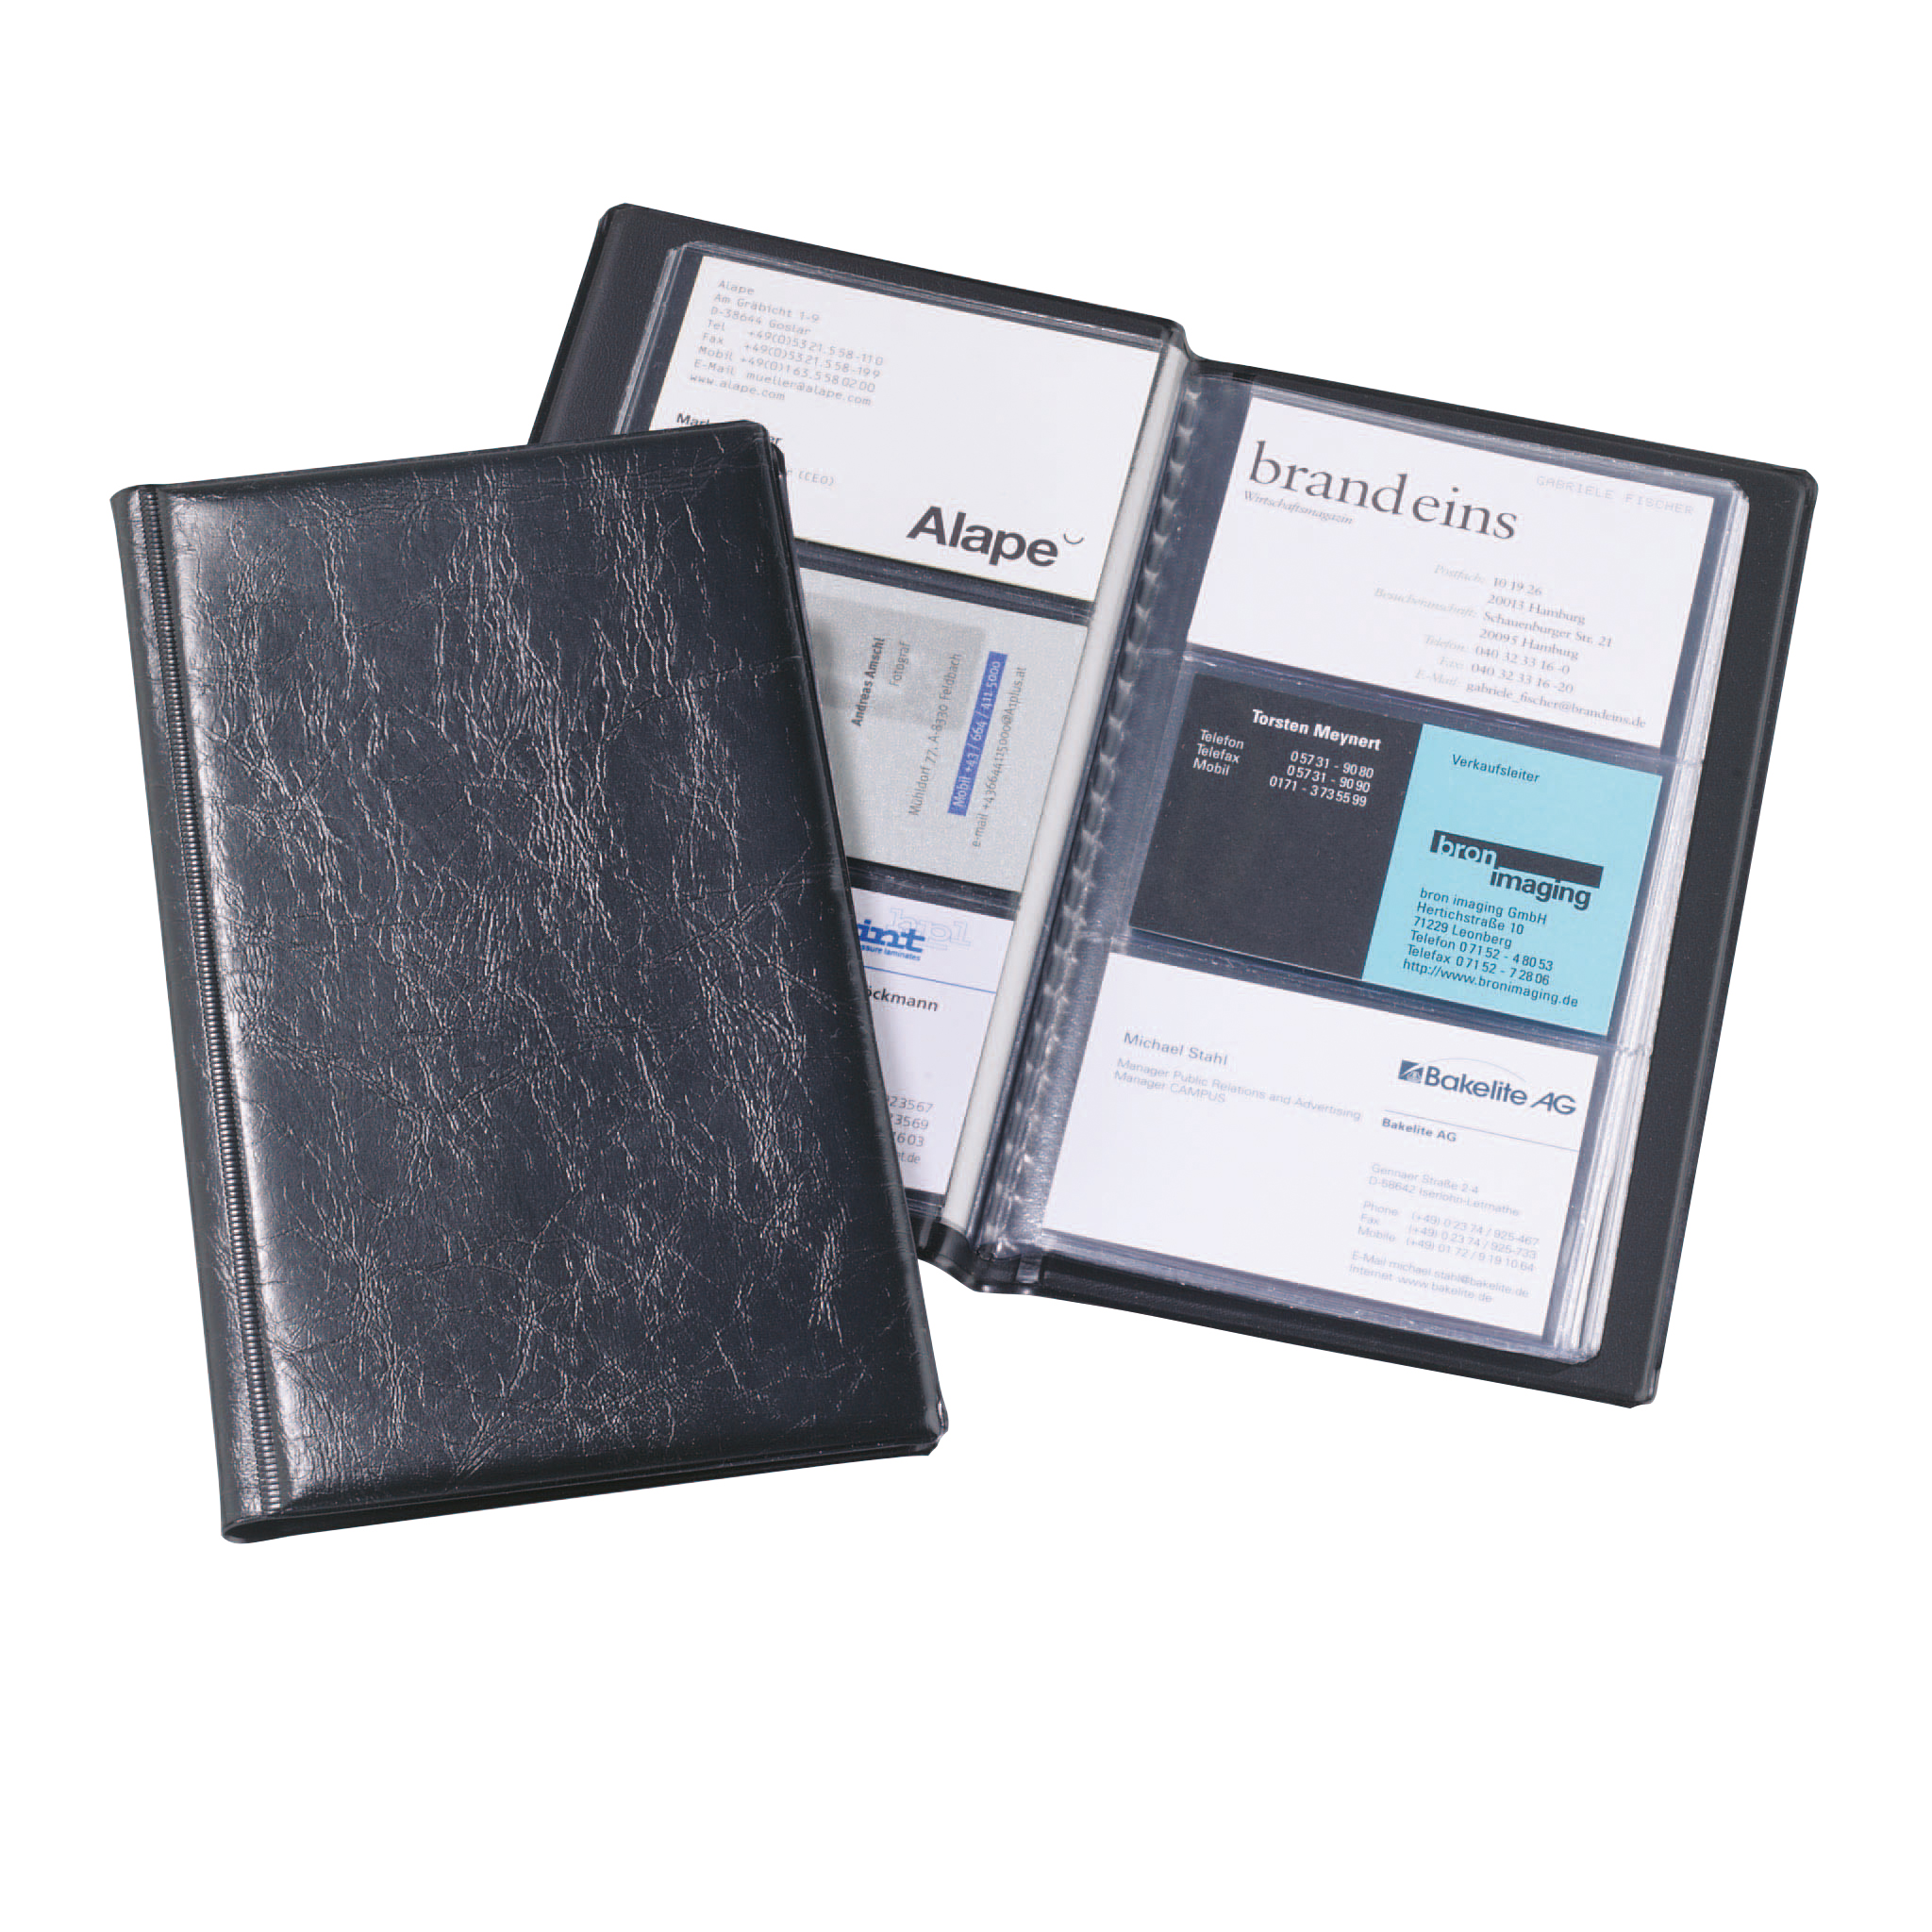 Binders Durable Visifix Business Card Album Capacity 72 Black Ref 2400/01